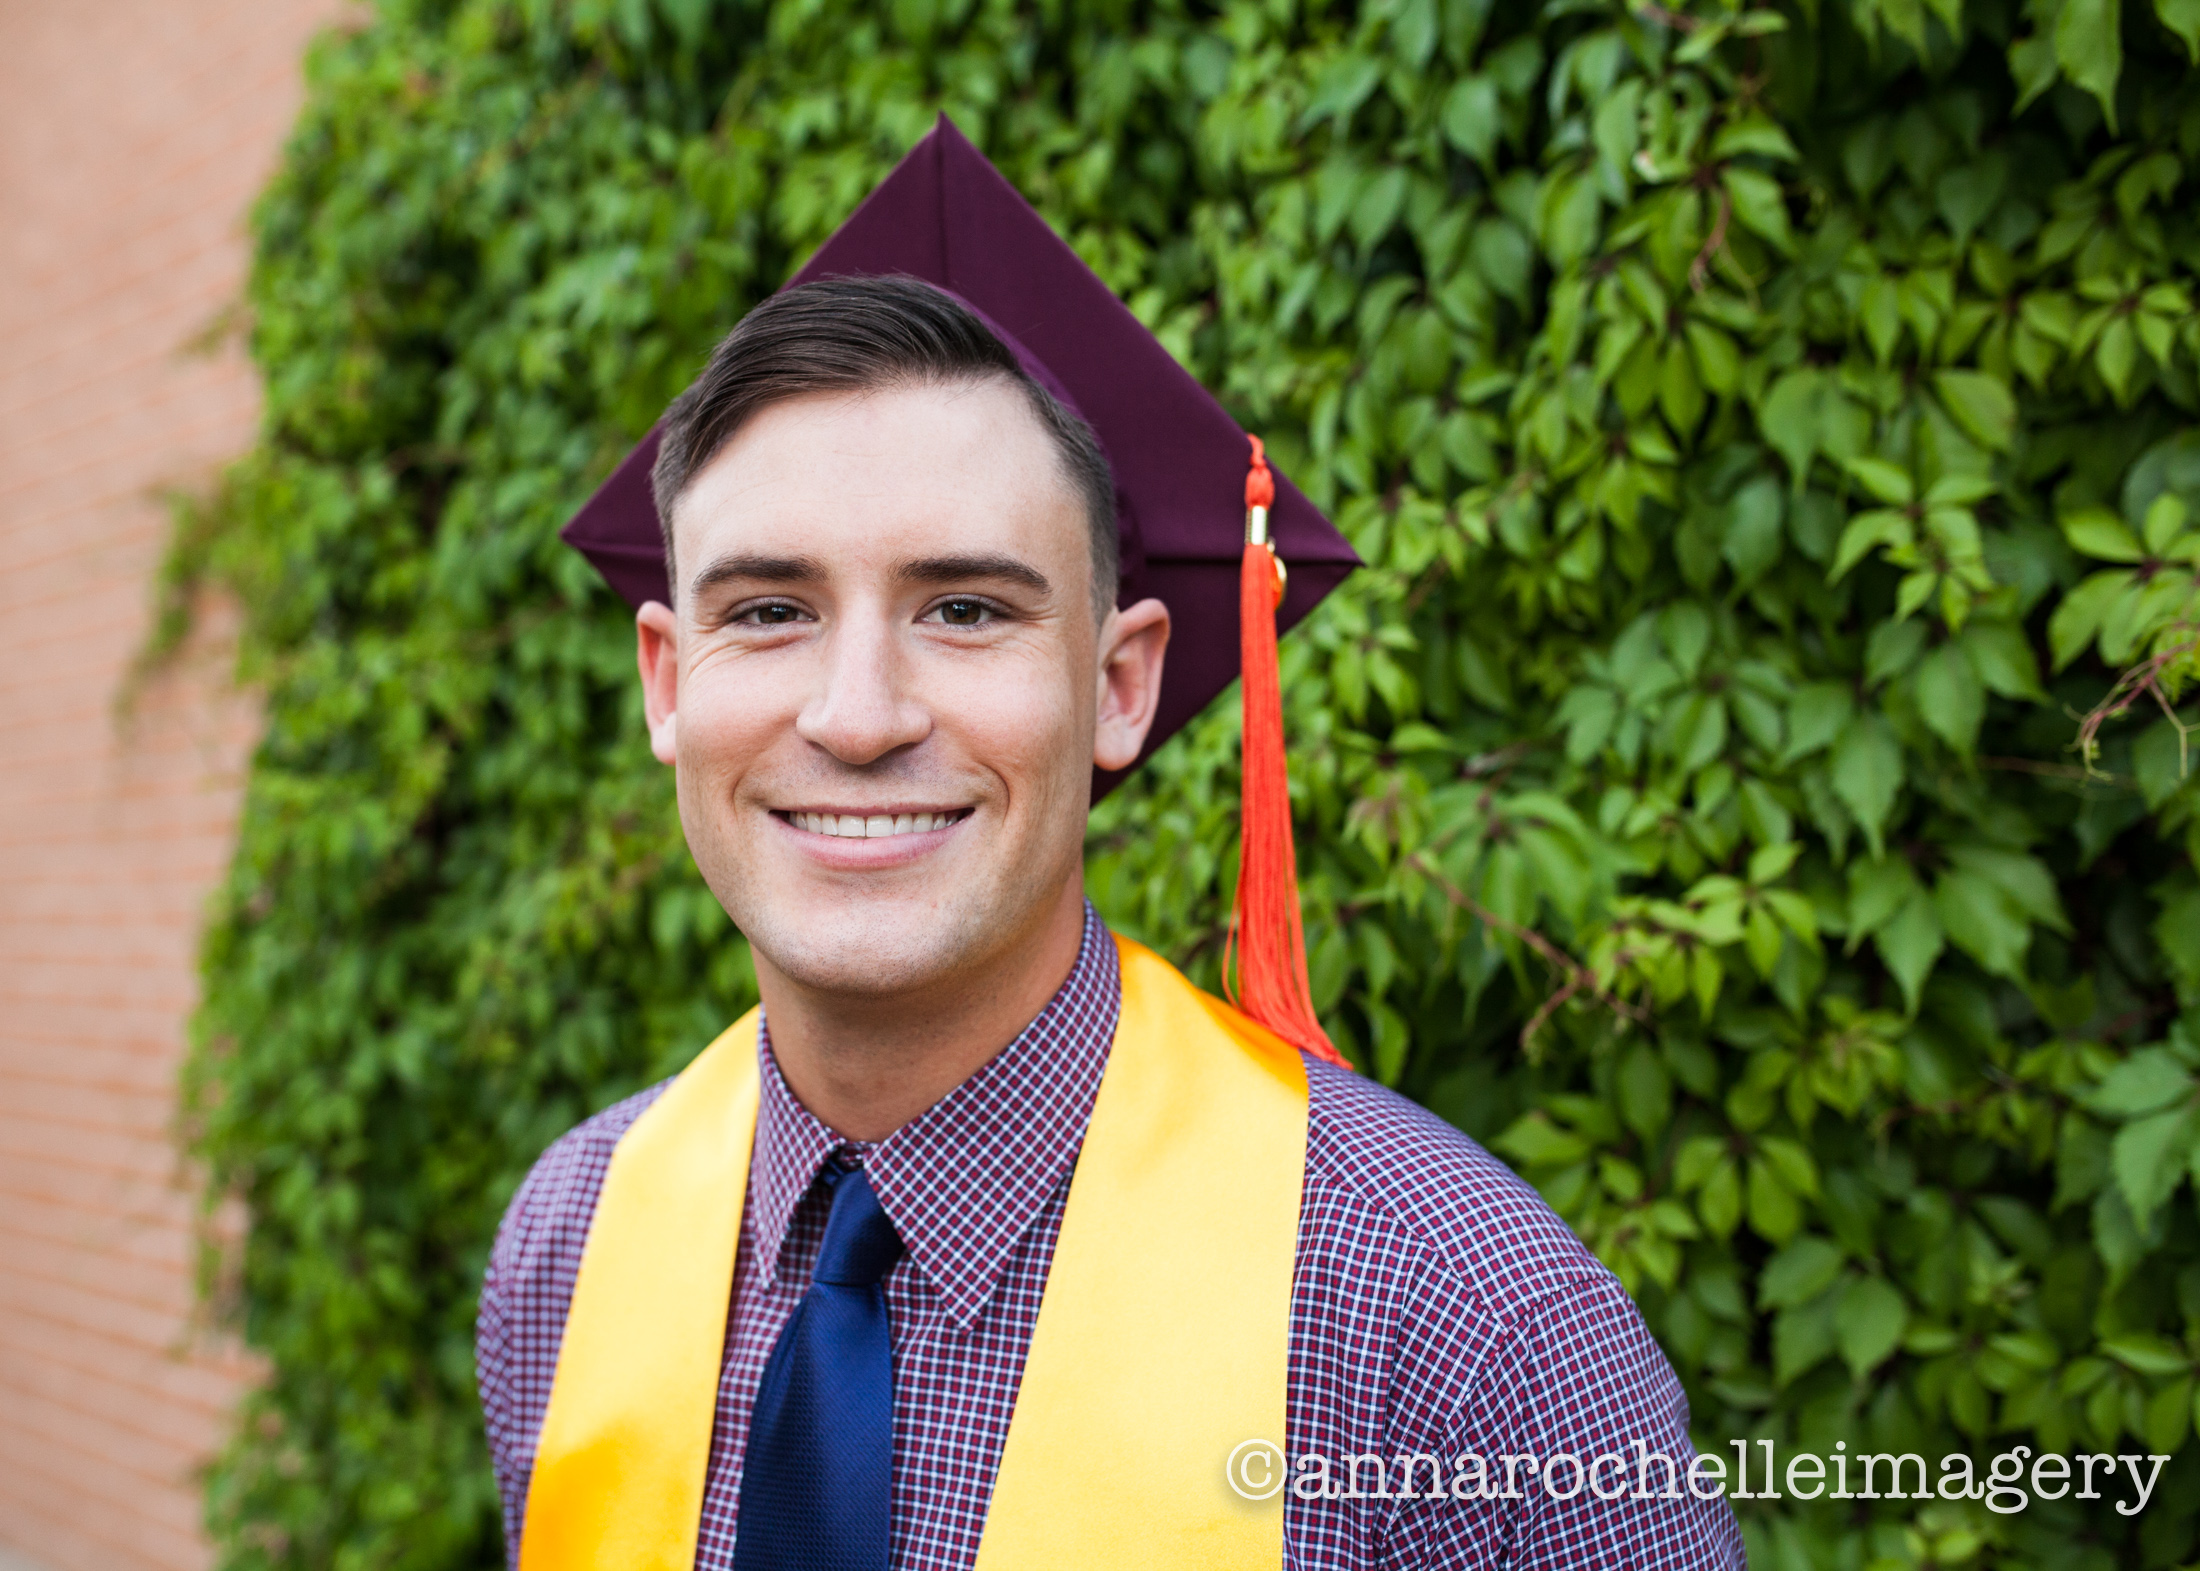 dennis-asu-headshot-graduation-senior-.jpg